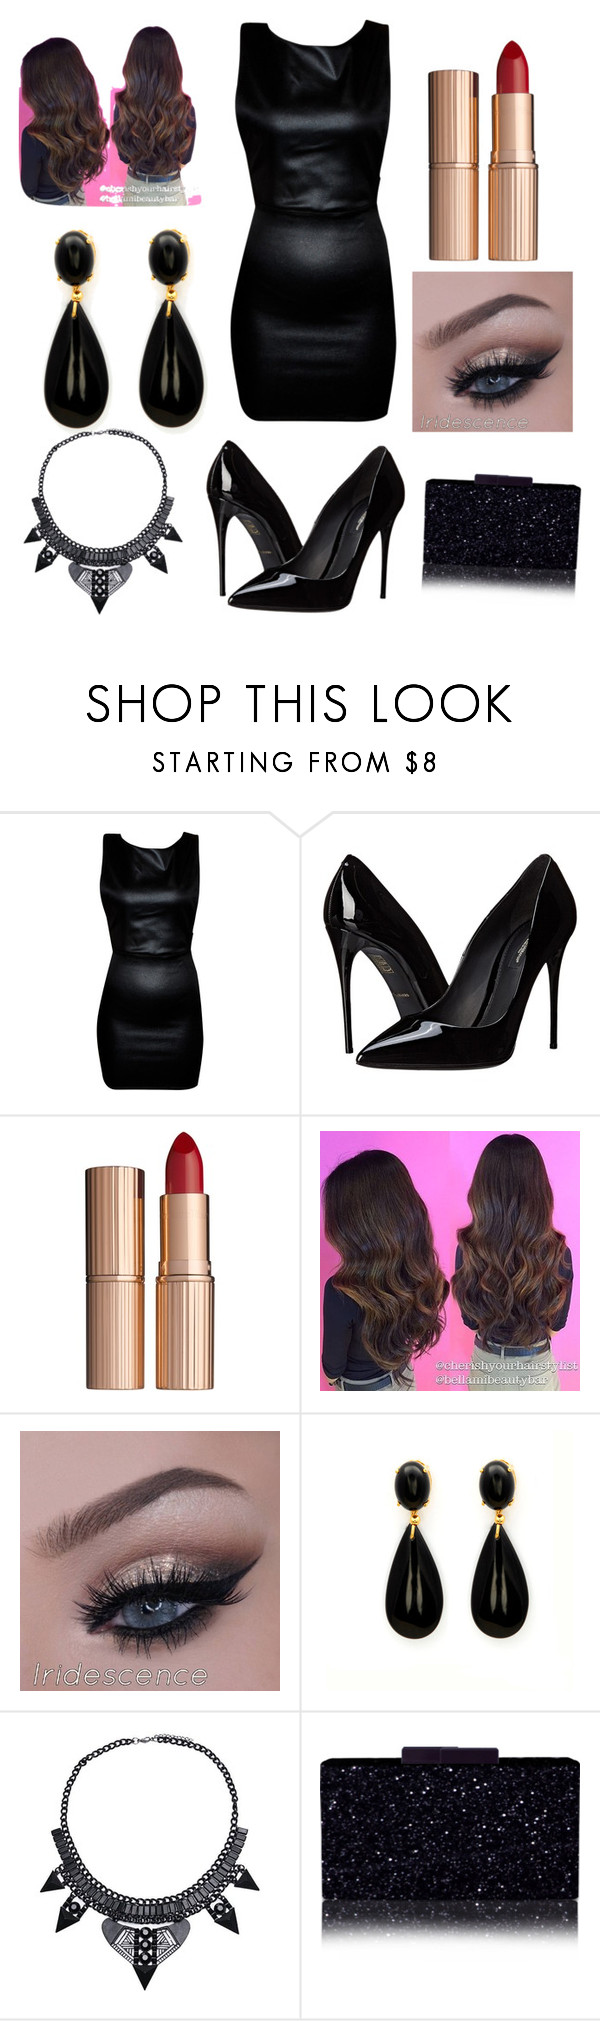 """""""Night out"""" by prettylittleliers1 ❤ liked on Polyvore featuring Dolce&Gabbana, Charlotte Tilbury, women's clothing, women's fashion, women, female, woman, misses and juniors"""